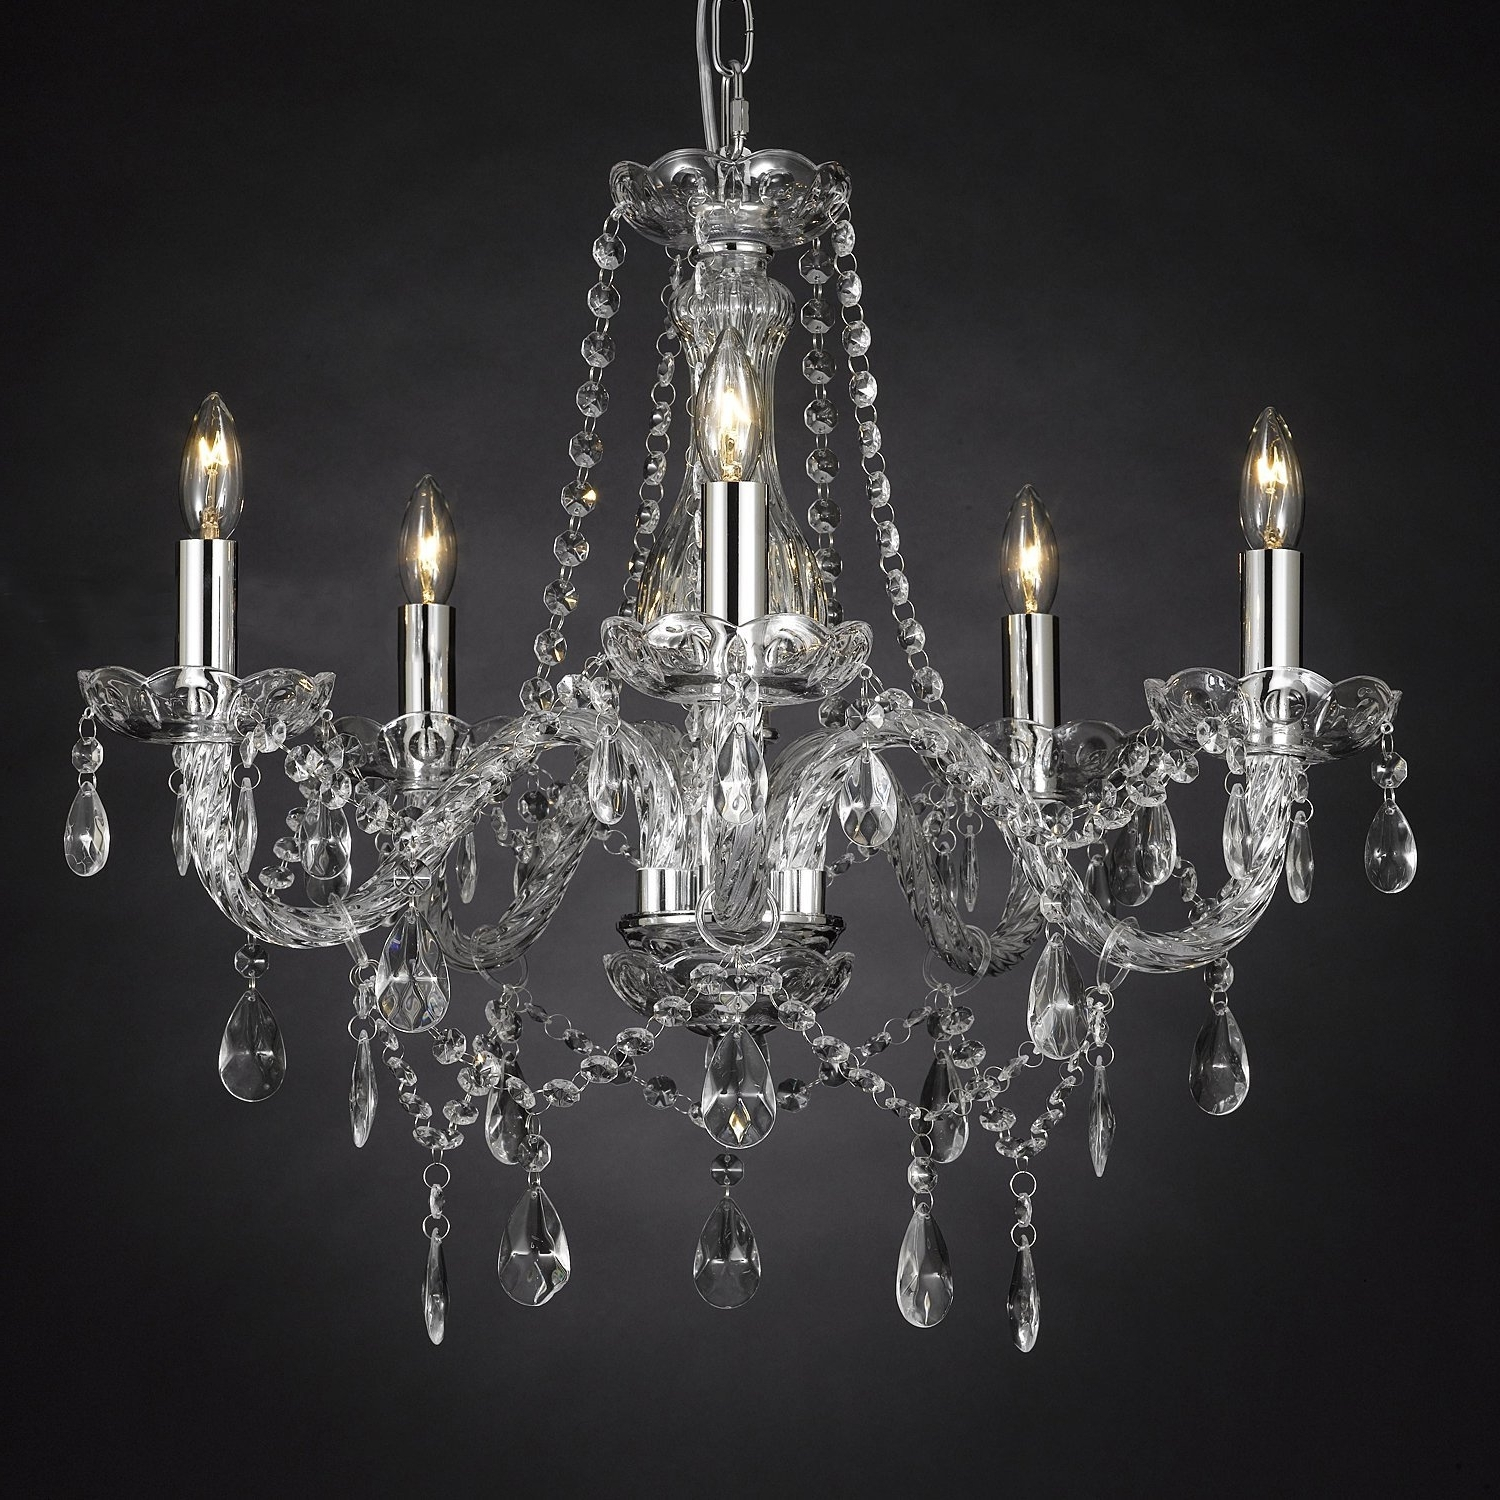 Chandelier Lights With Regard To Well Liked Lighting: Flameless Candle Chandelier (View 12 of 20)